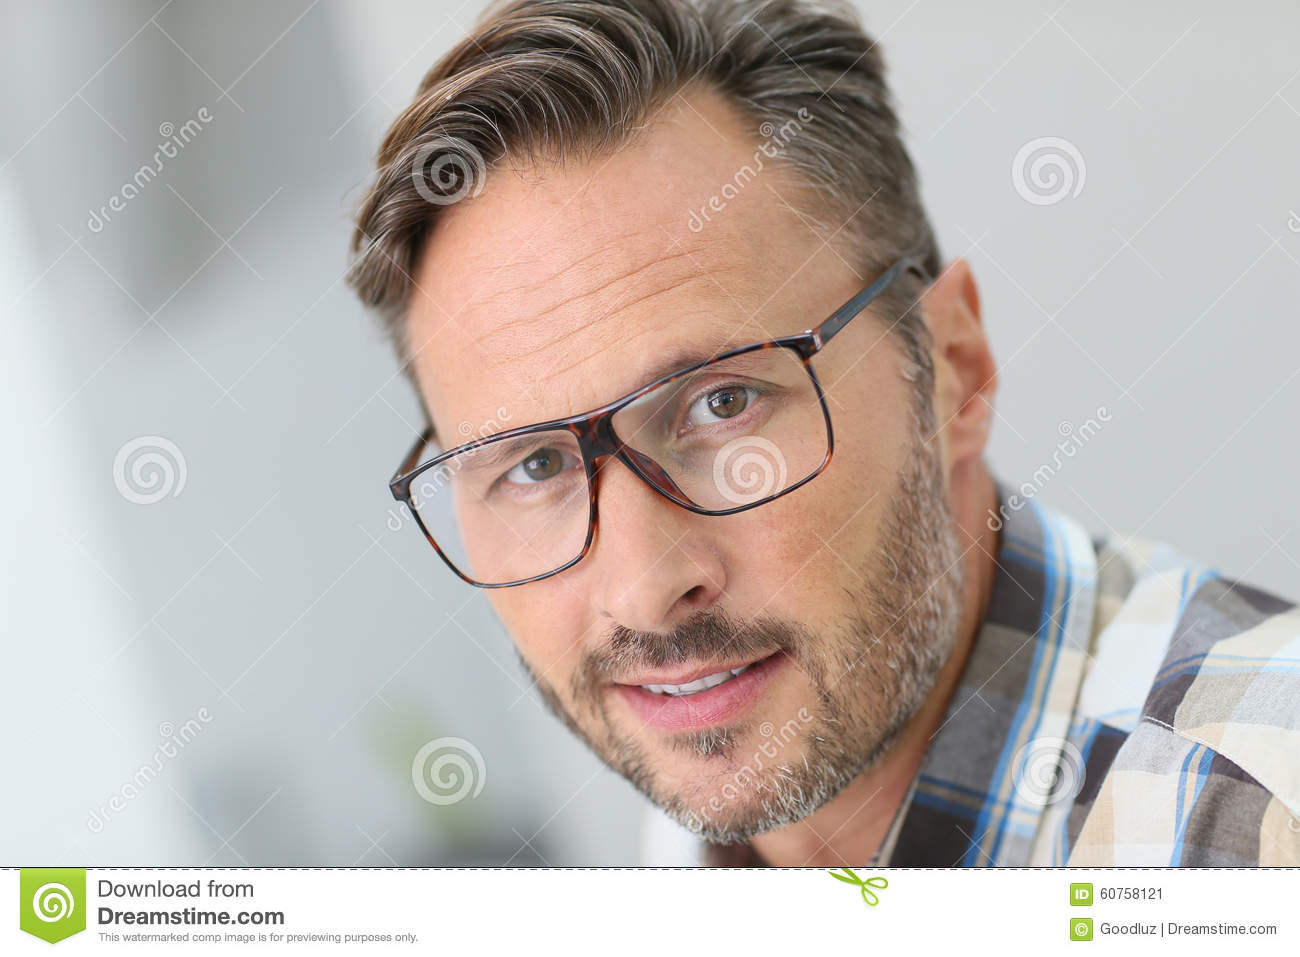 d55b8224971 Portrait Of Handsome Young Man Wearing Eyeglasses Stock Image ...